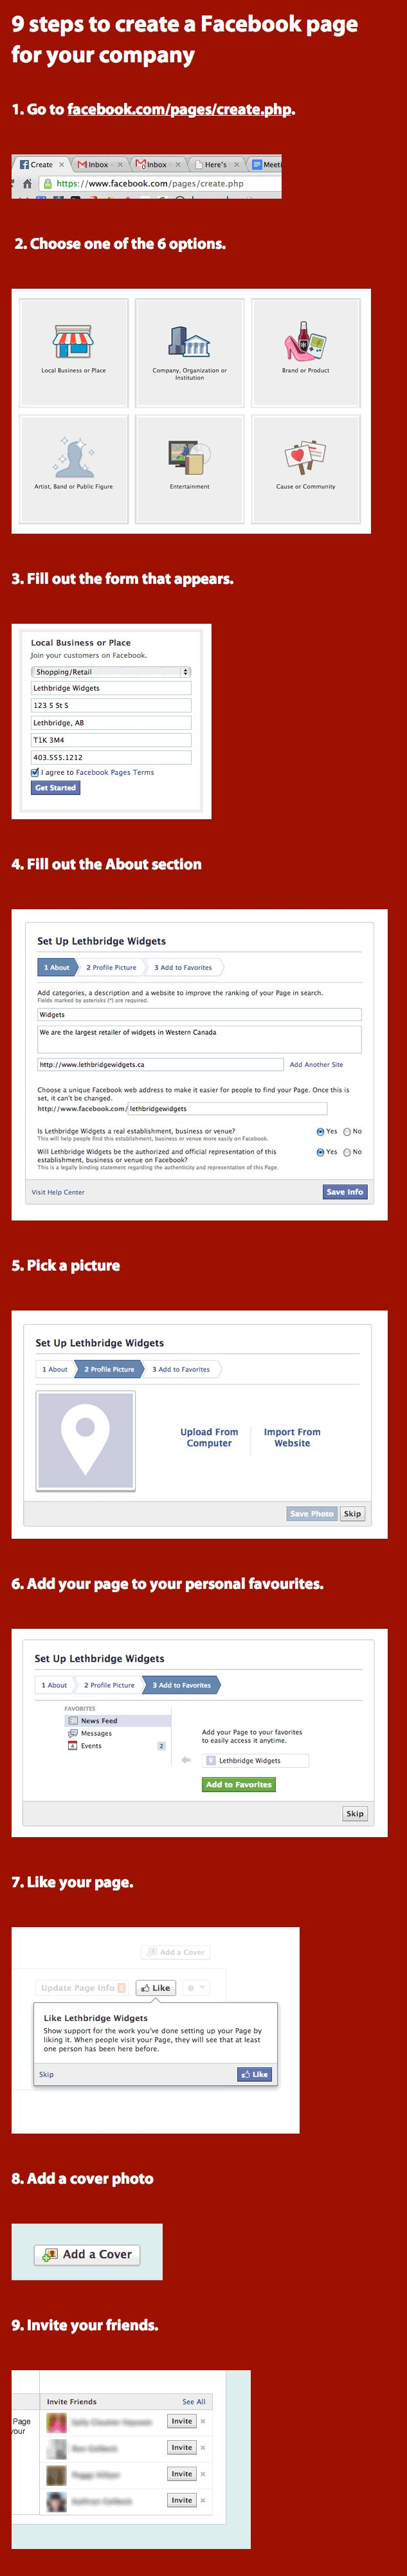 How to create your company Facebook page in less than 5 minutes